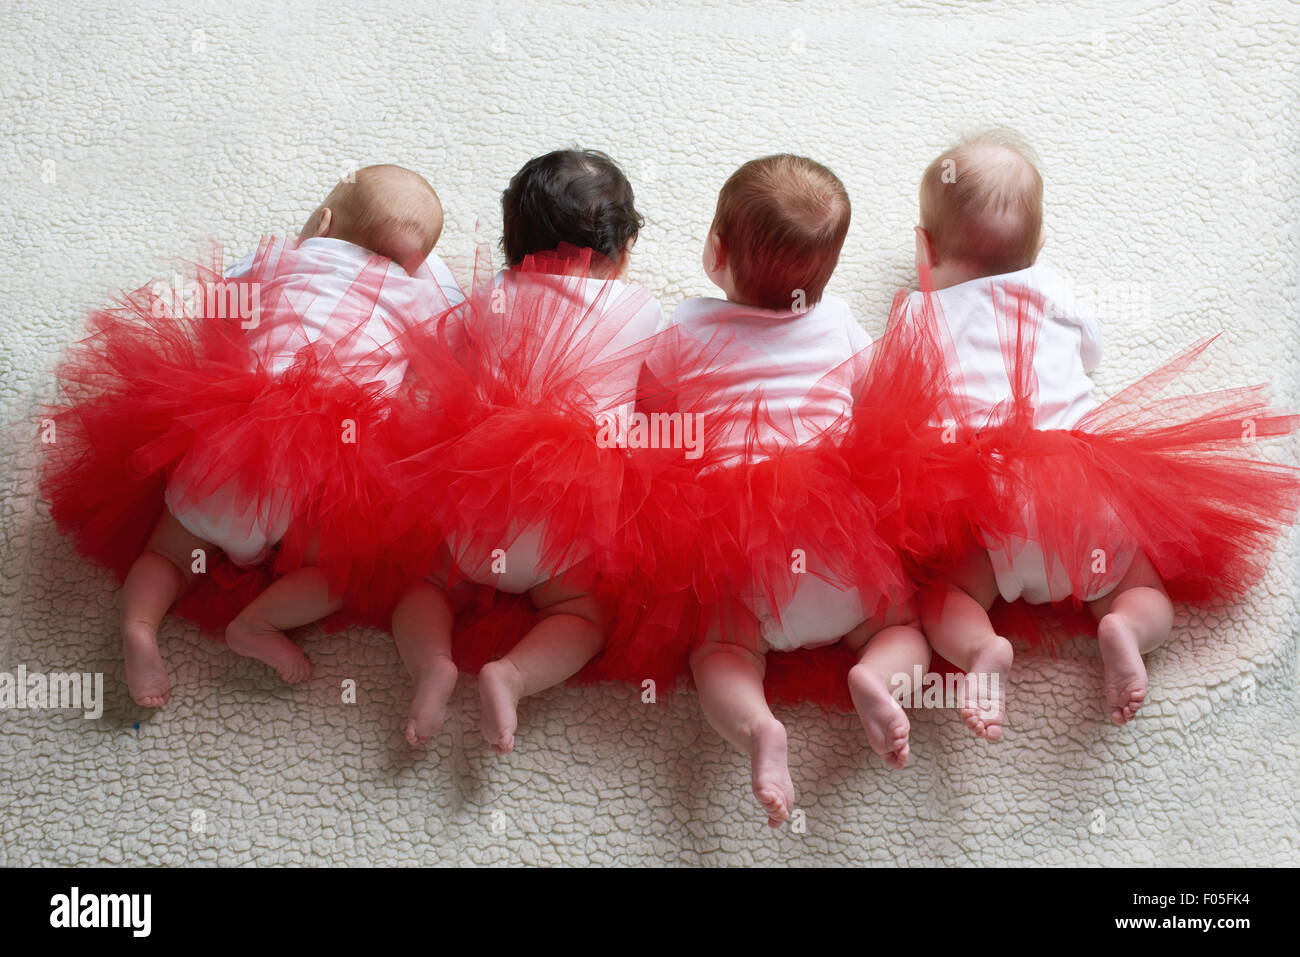 Babes in skirts ballerinas rear view - Stock Image